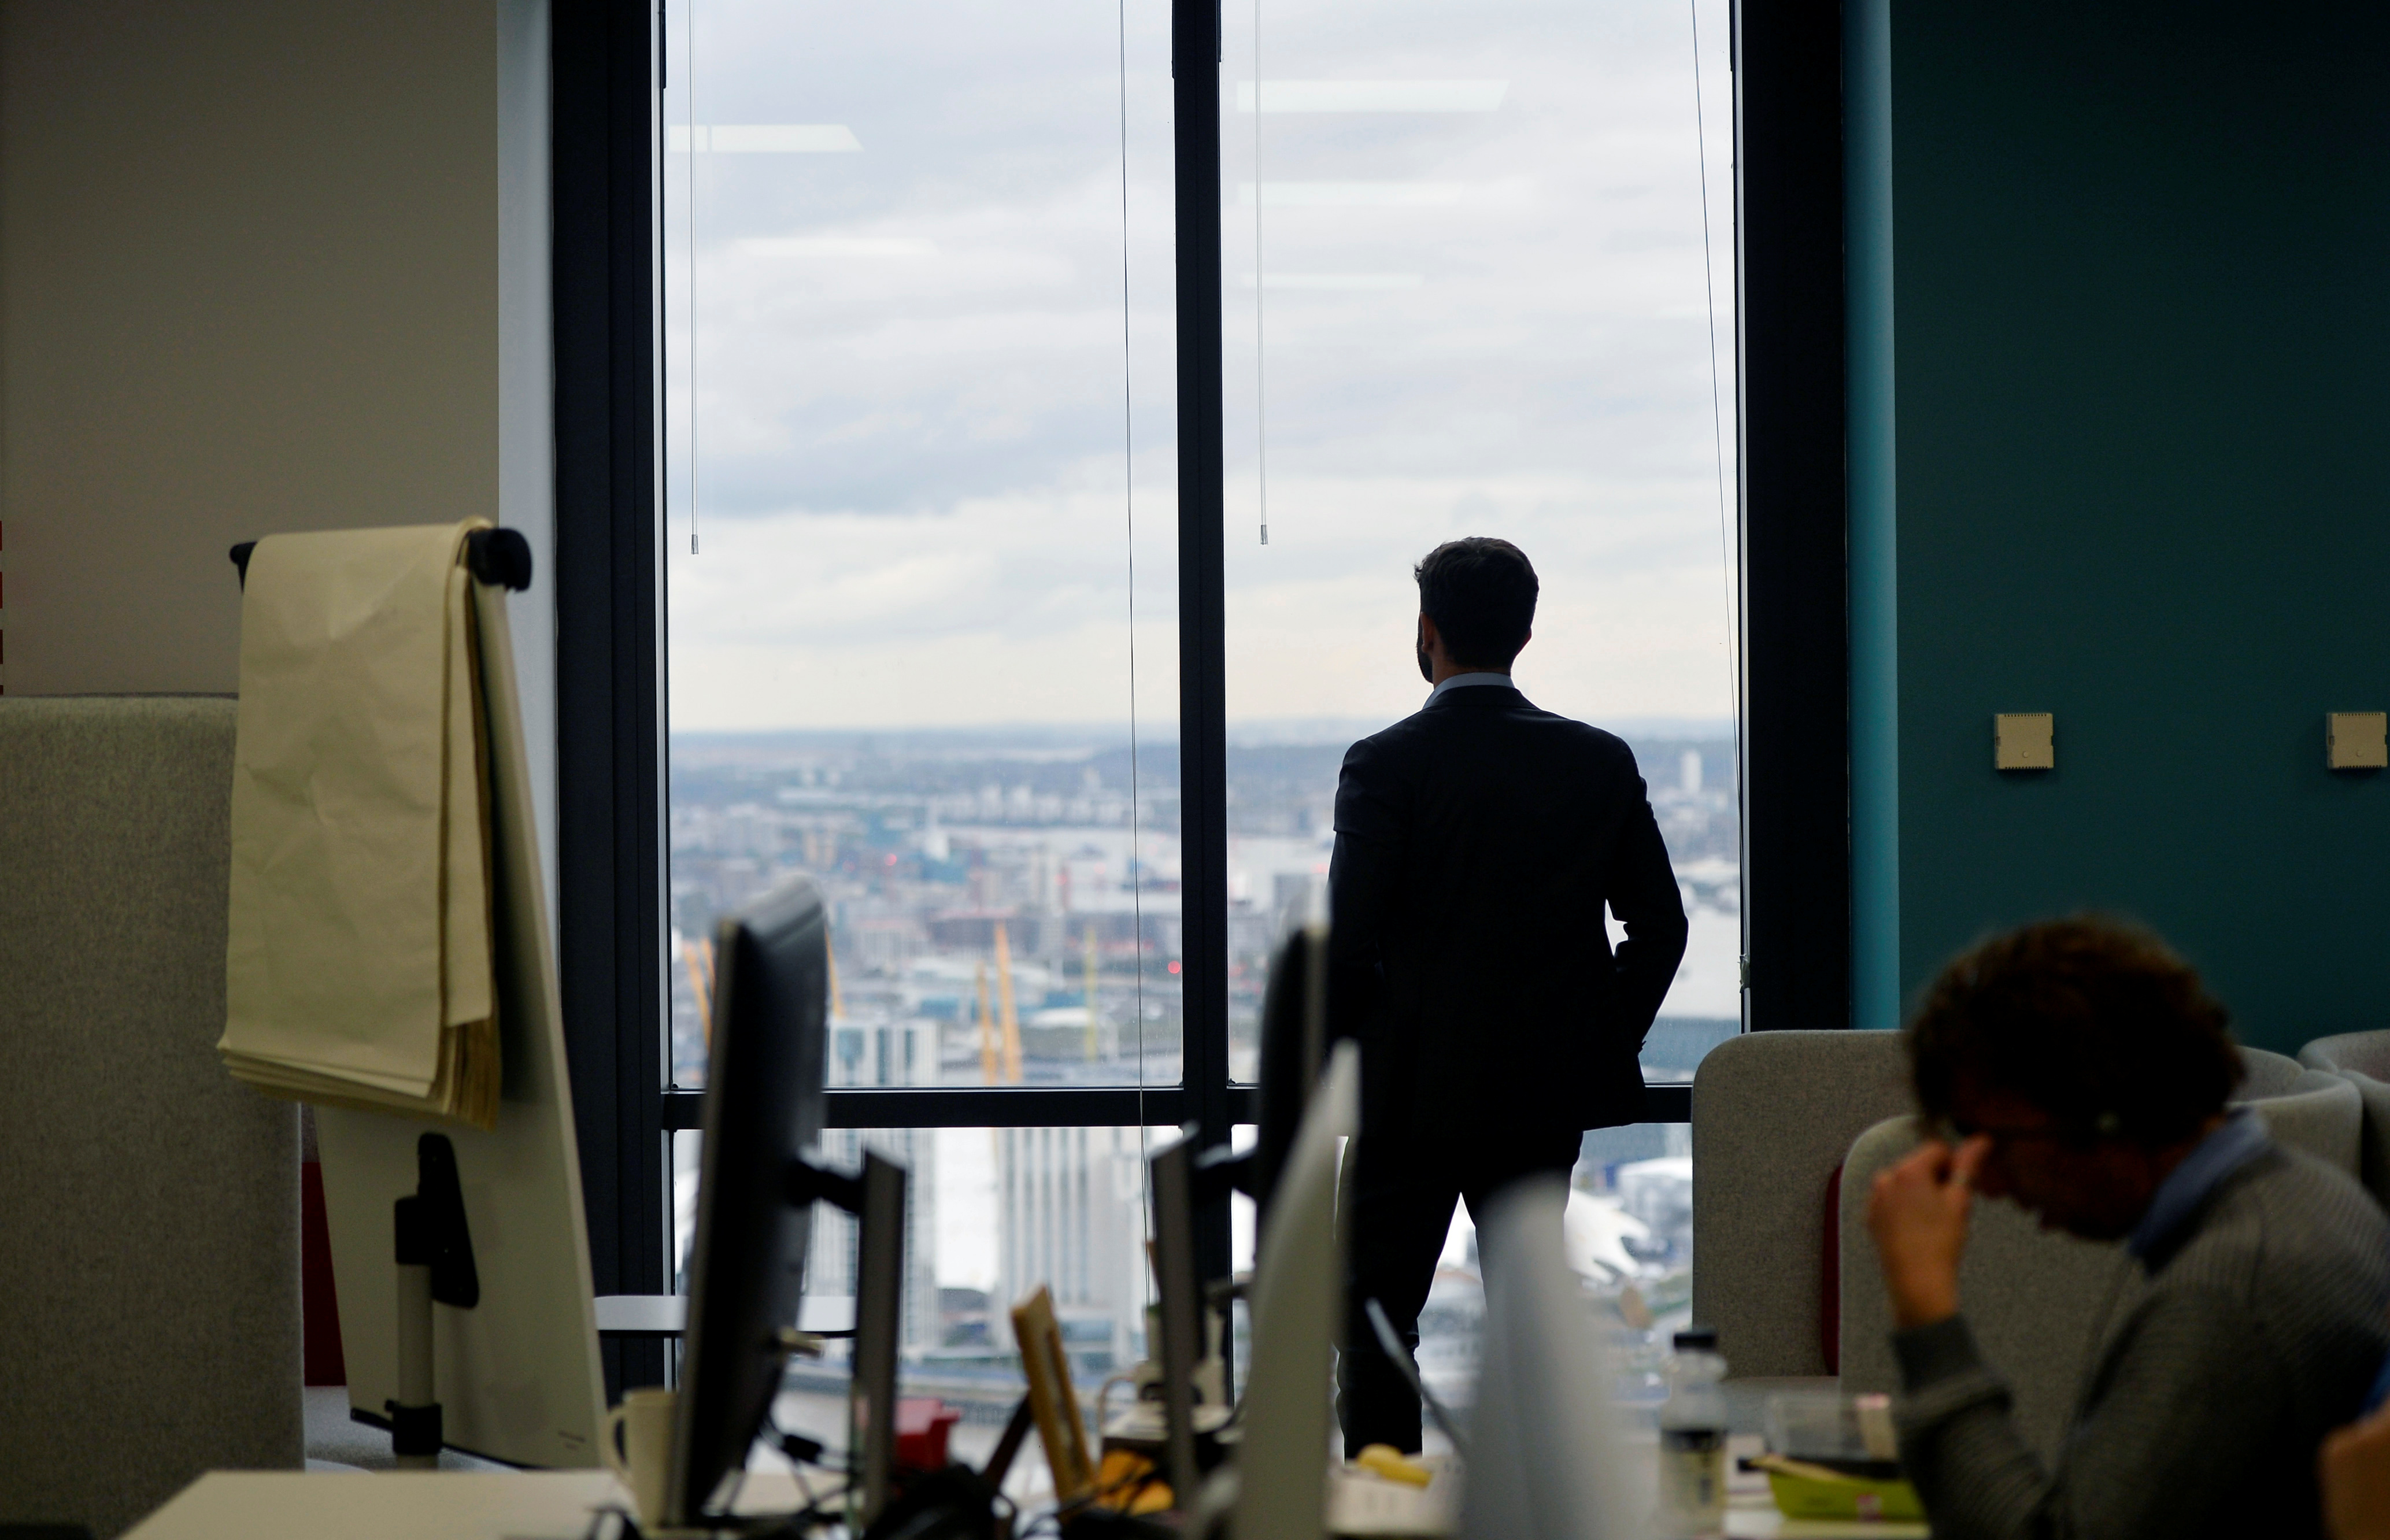 A UBS employee works in the UBS